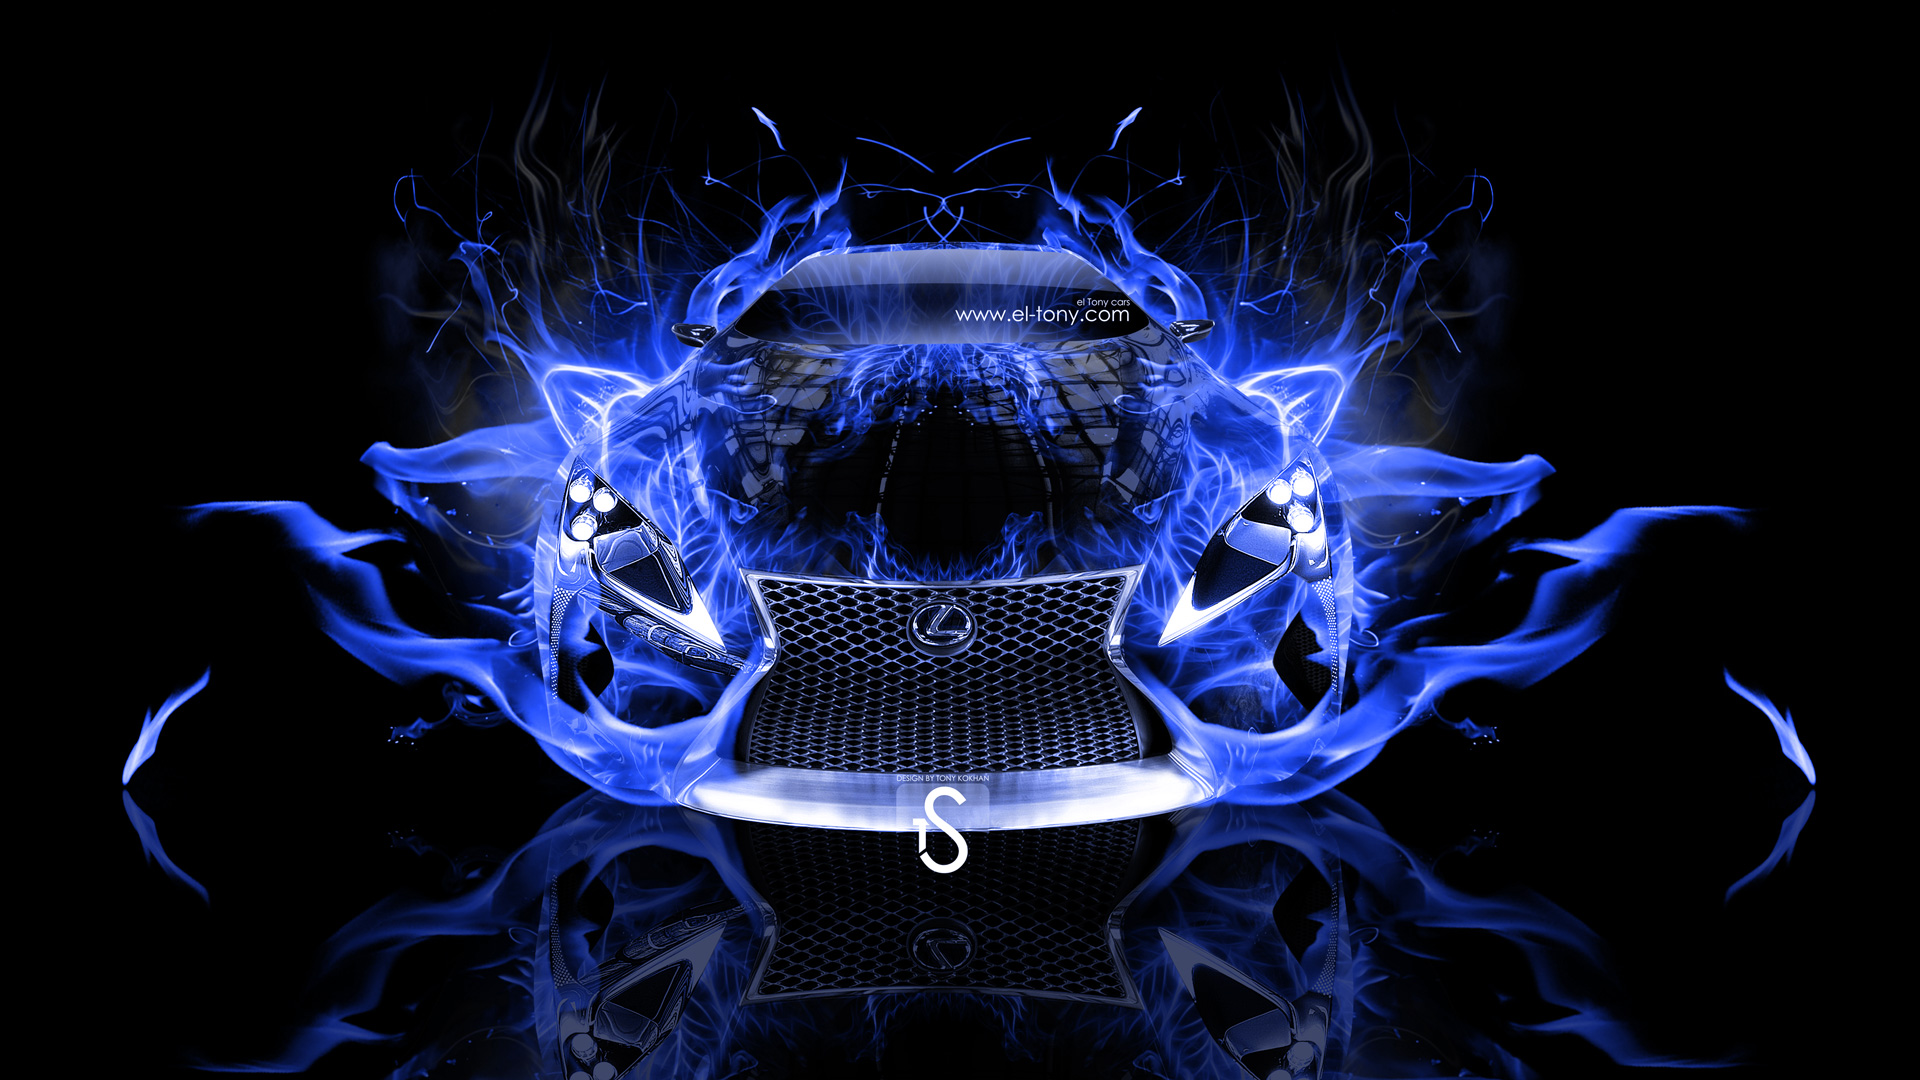 Lexus LF LC Blue Fire Abstract Car 2013 HD Wallpapers design by Tony 1920x1080